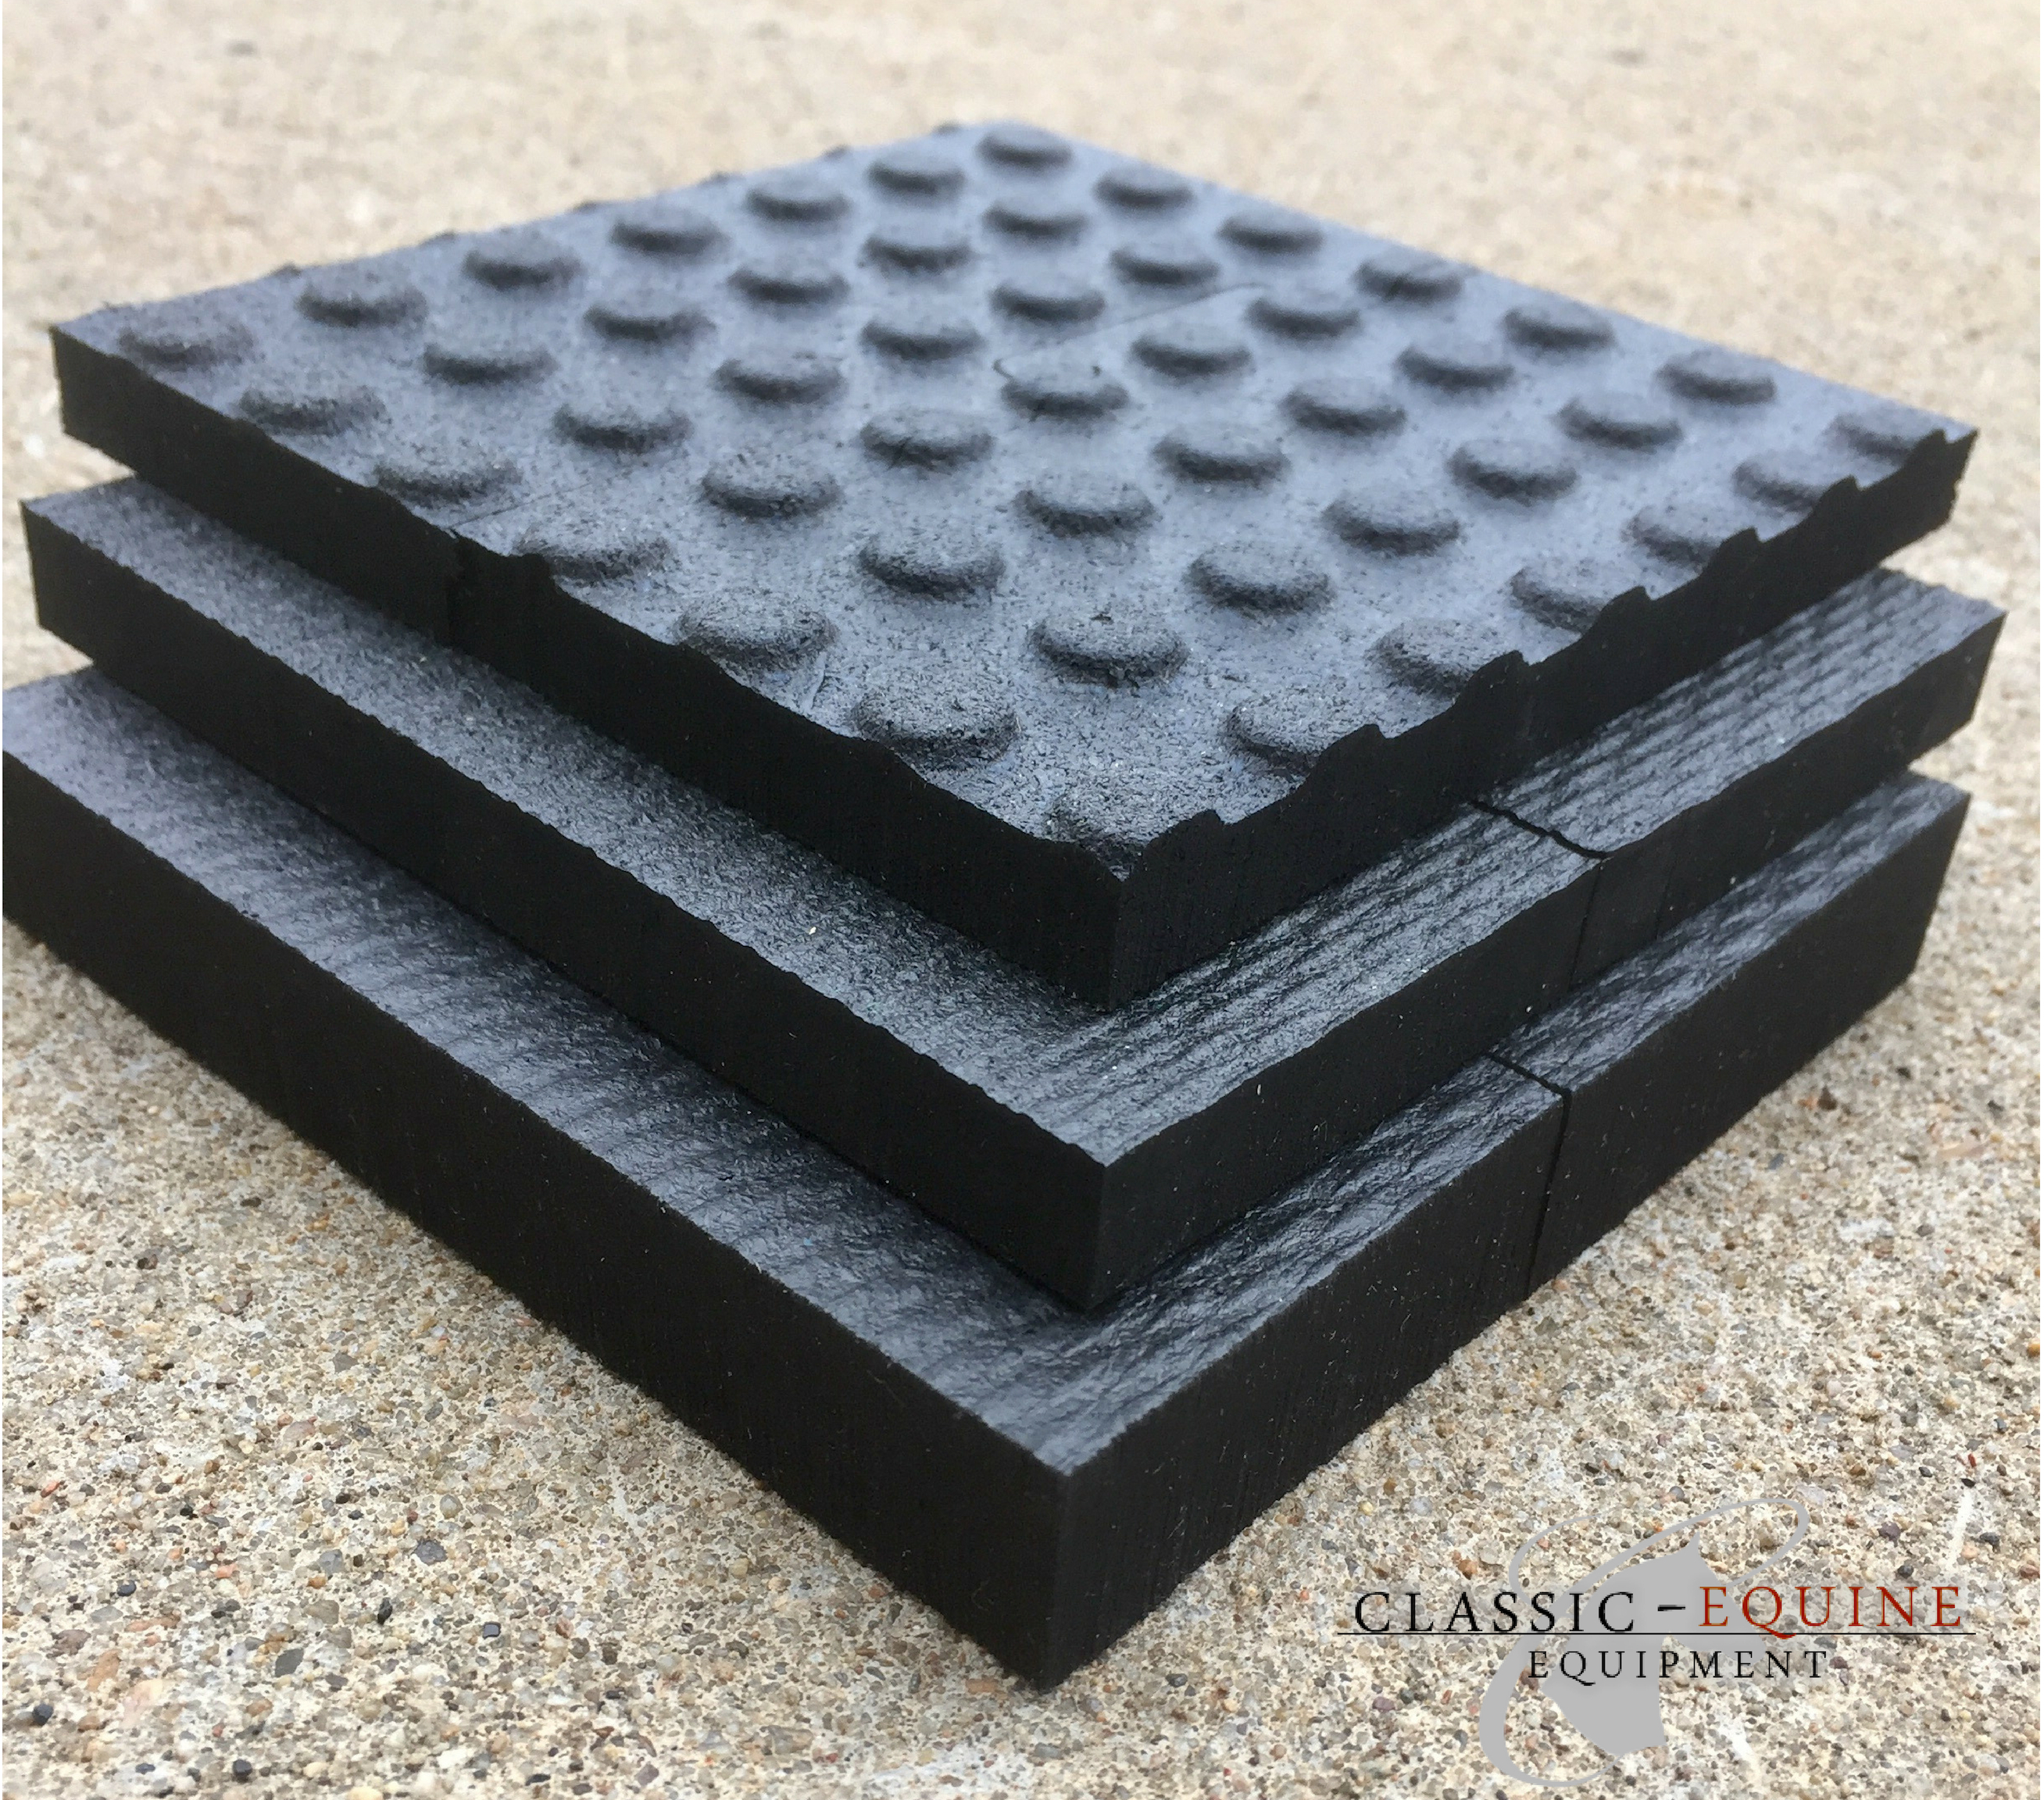 Classic equine stall mats